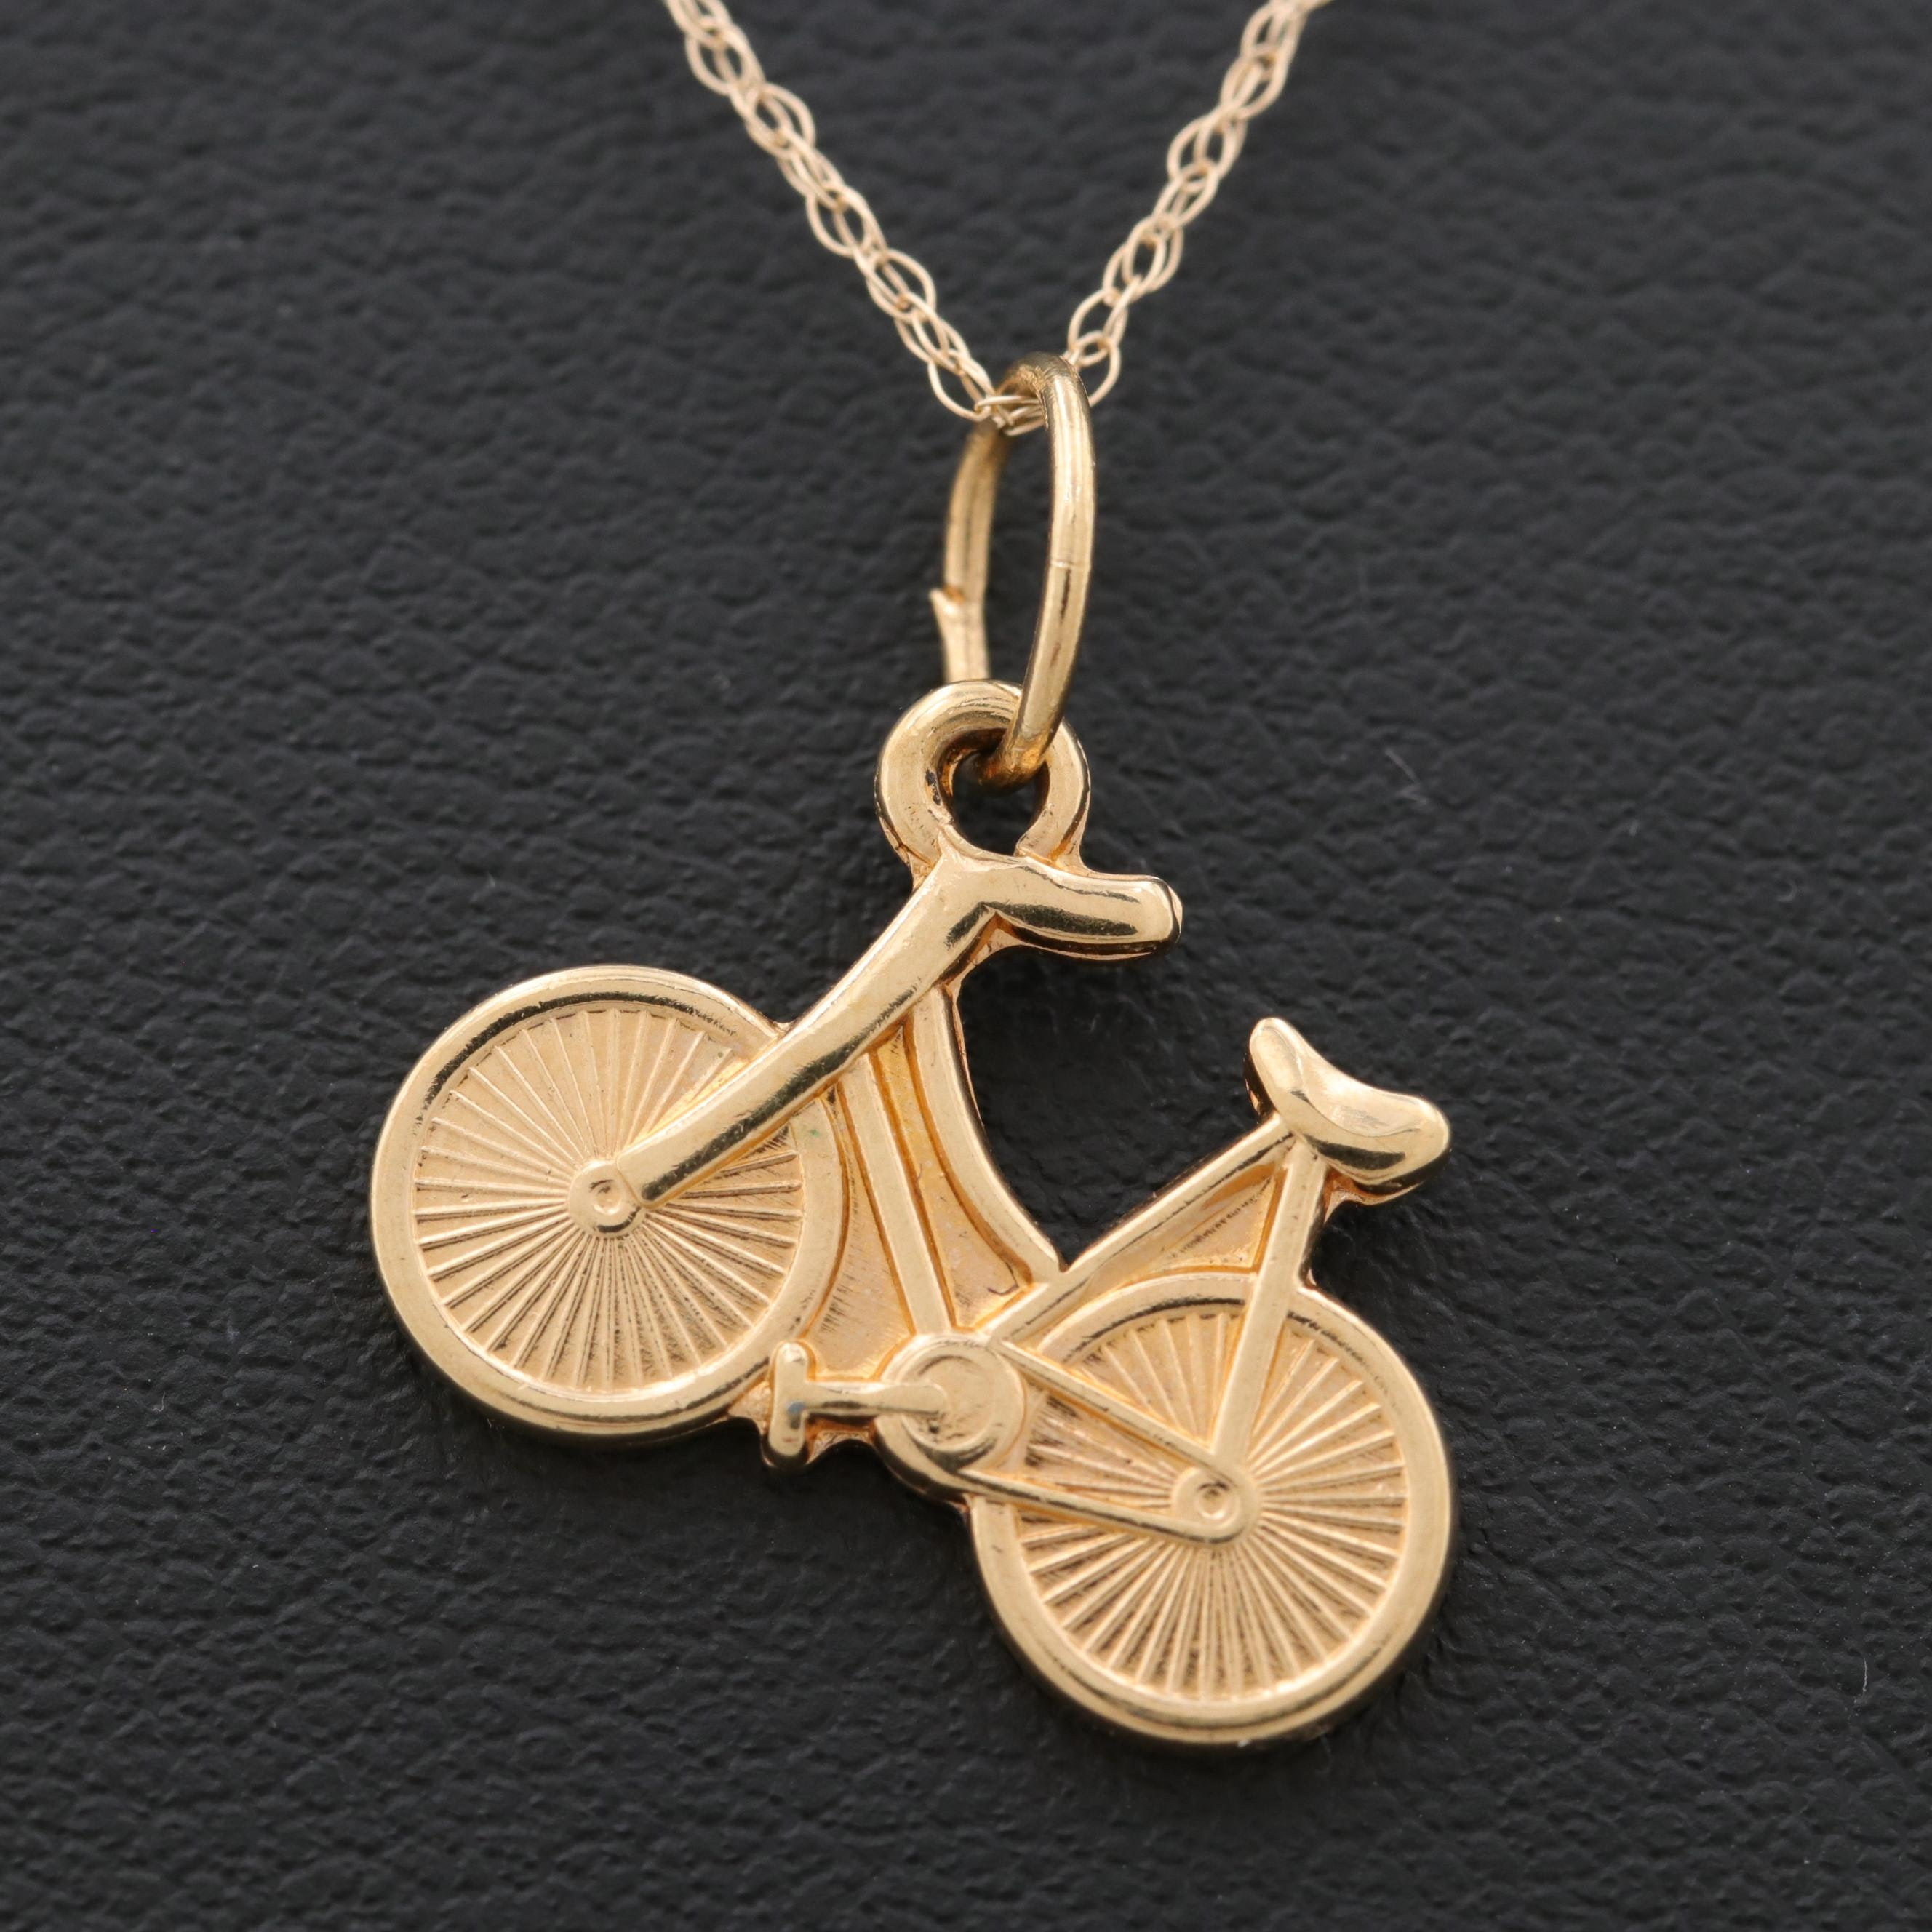 14K Yellow Gold Necklace with Gold Tone Bicycle Pendant